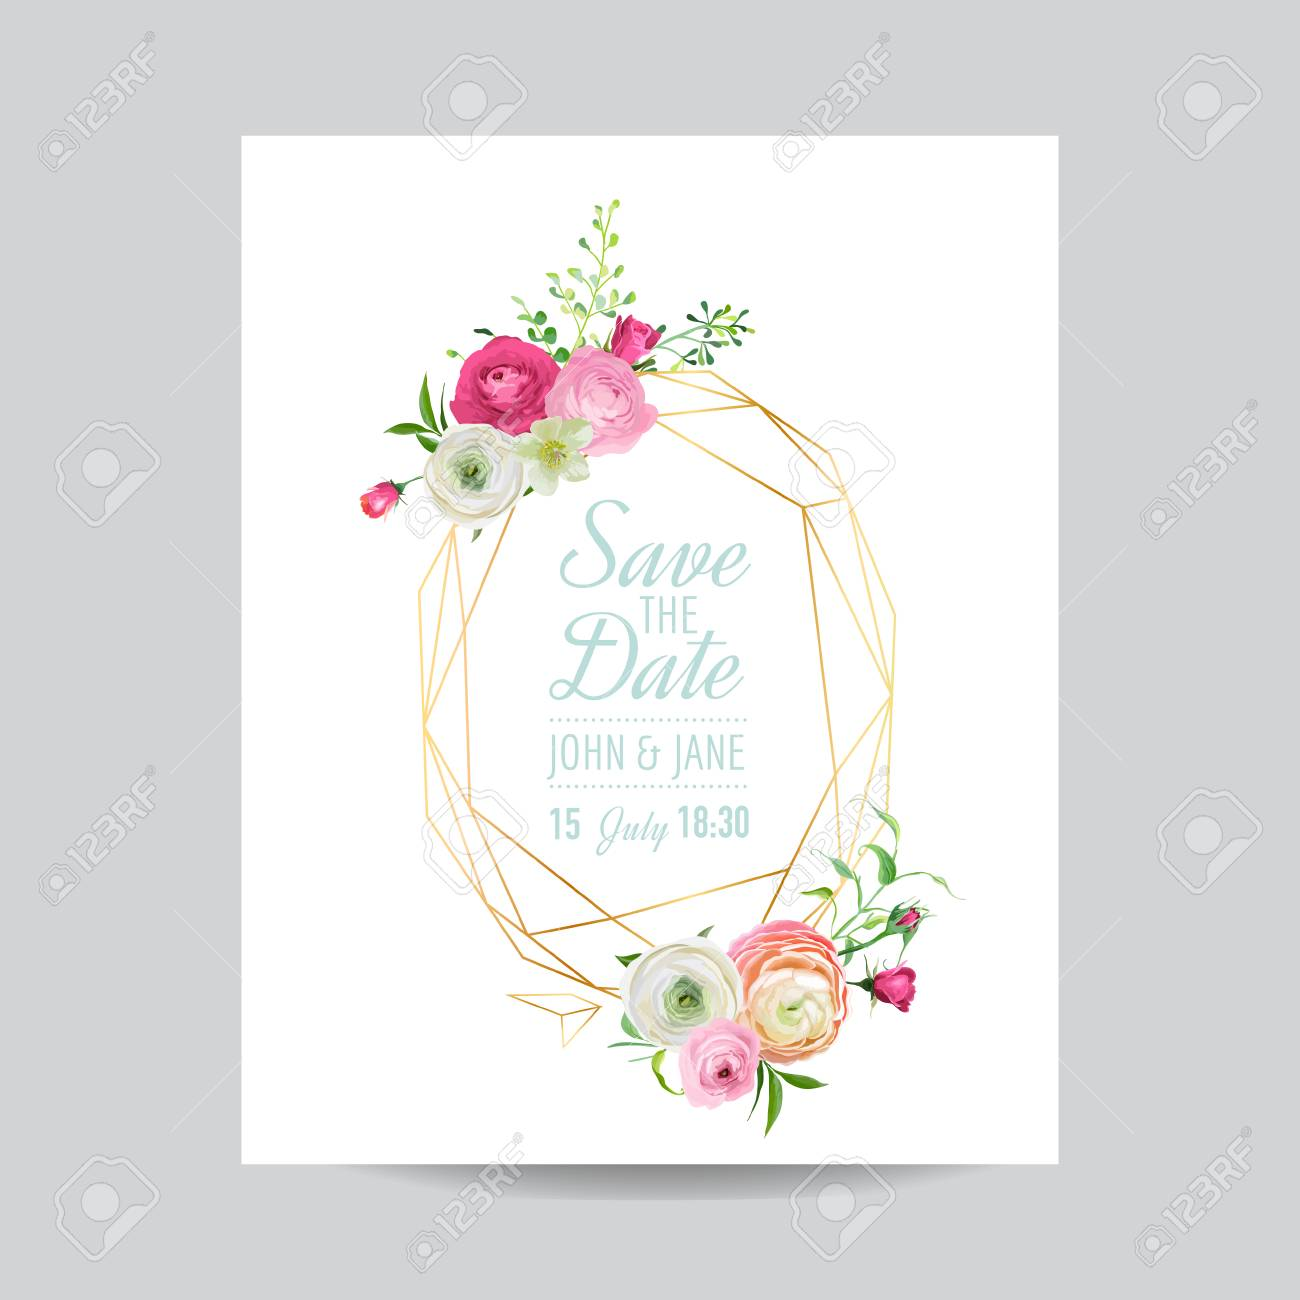 Wedding Invitation Floral Template Save The Date Golden Frame - Save the date text template